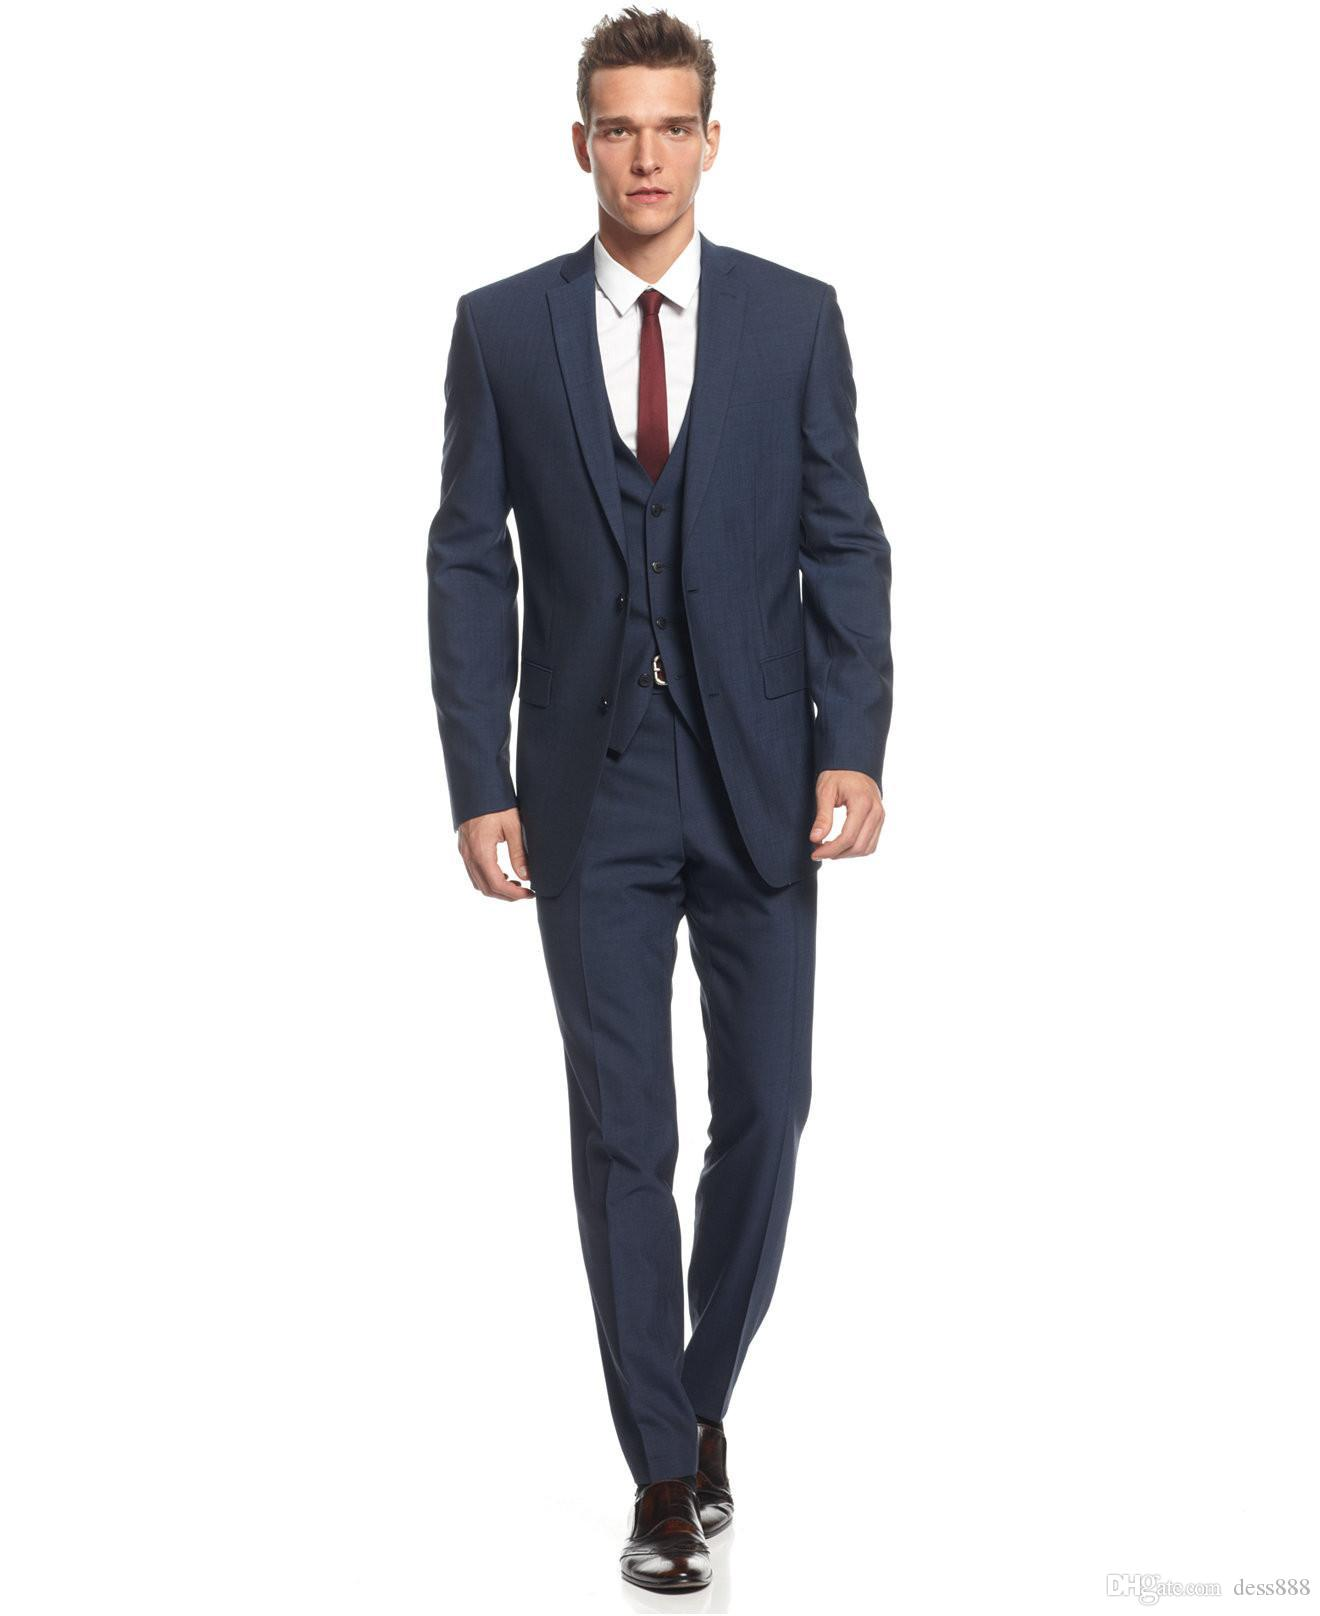 A slim-fit suit works on any body type for a lean look. Trim down with these slim-fit suits that'll make even a heavy weight into a stylish champ.